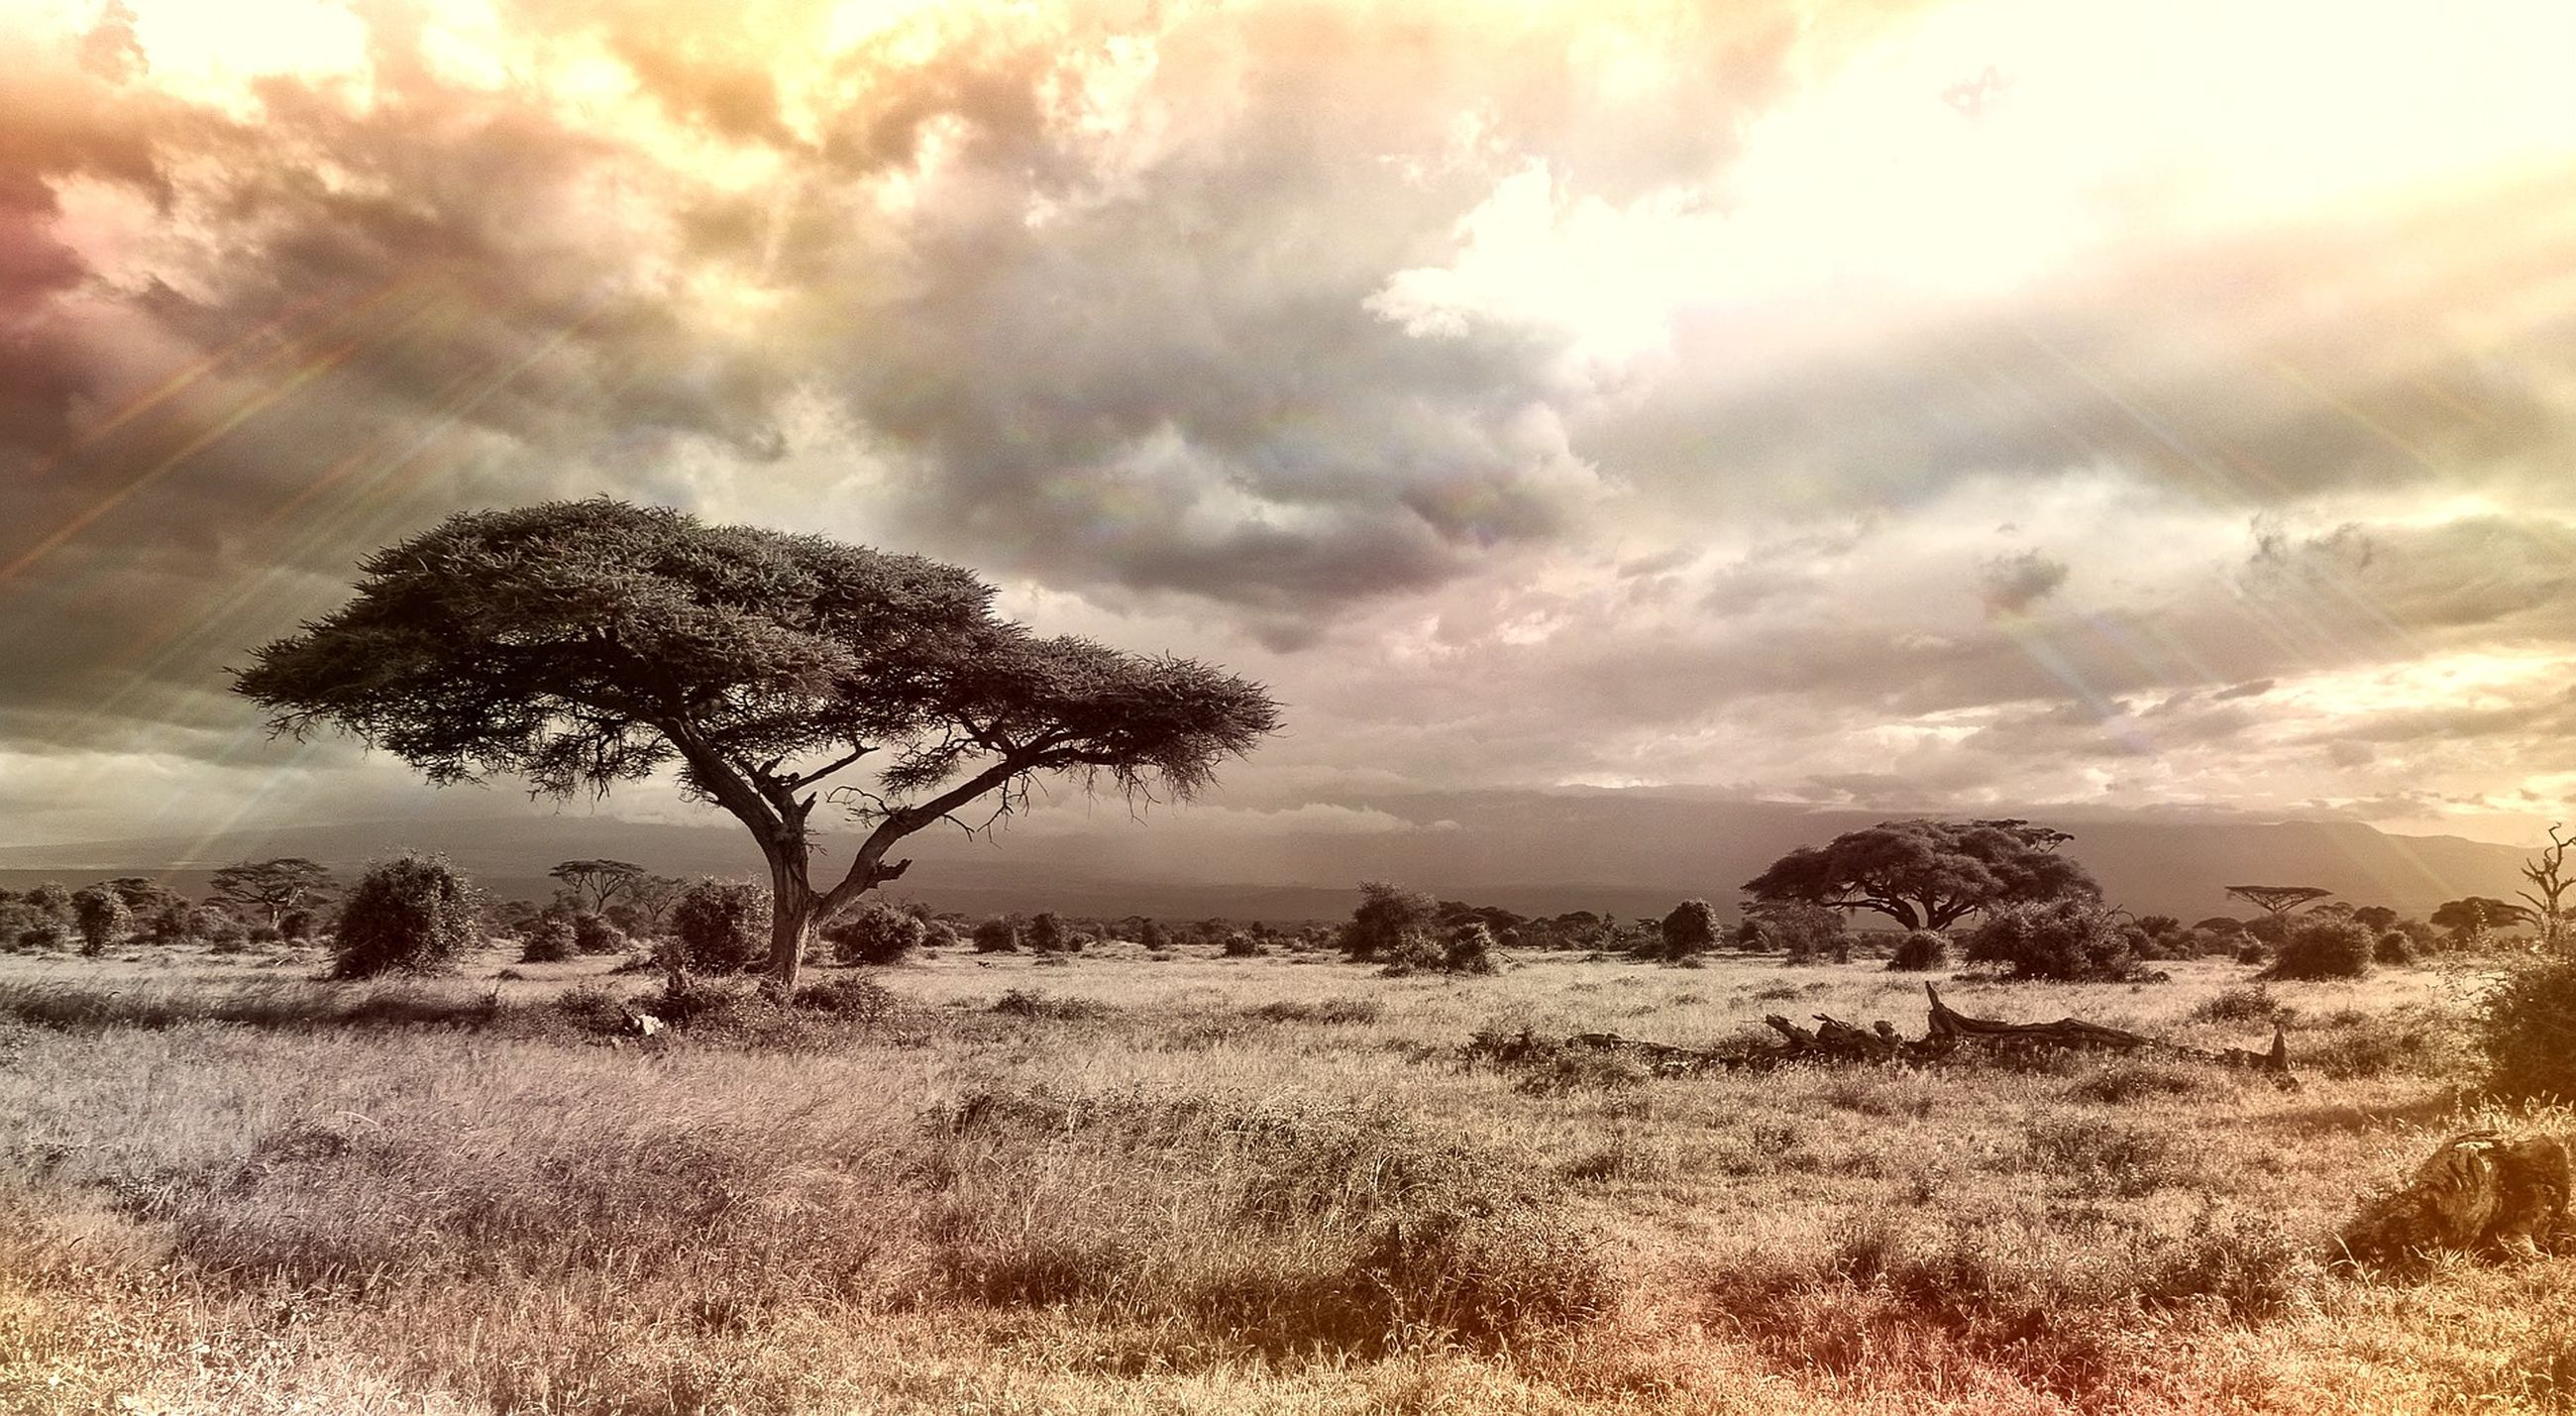 sky, tranquil scene, tranquility, landscape, tree, cloud - sky, scenics, beauty in nature, nature, cloudy, cloud, field, non-urban scene, bare tree, idyllic, growth, remote, sunset, horizon over land, grass